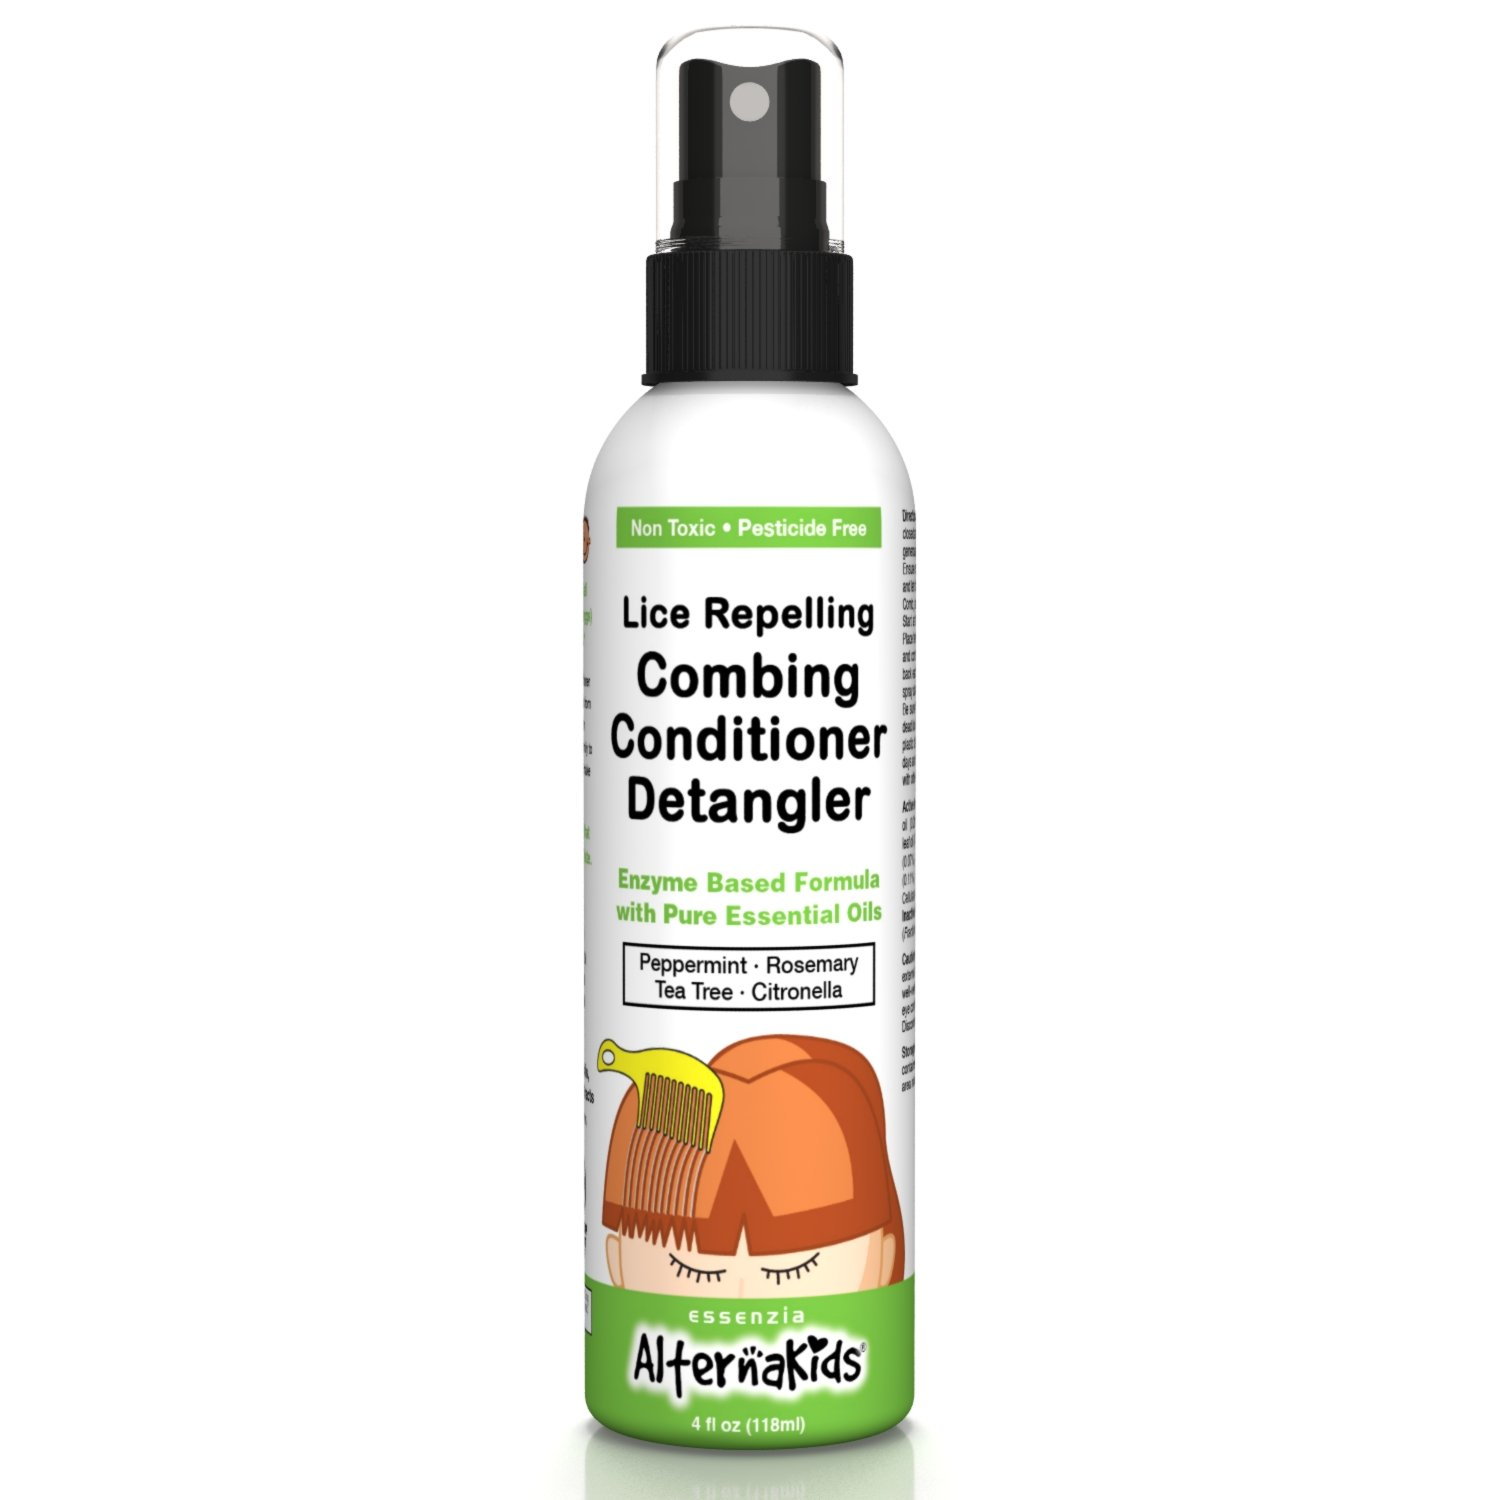 Natural Head Lice Detangler Conditioner by AlternaKids - Non-Toxic Hair Spray Treatment That Kills, Removes, Prevents Super Lice and Nits | for Kids and Adults (4 oz Bottle)